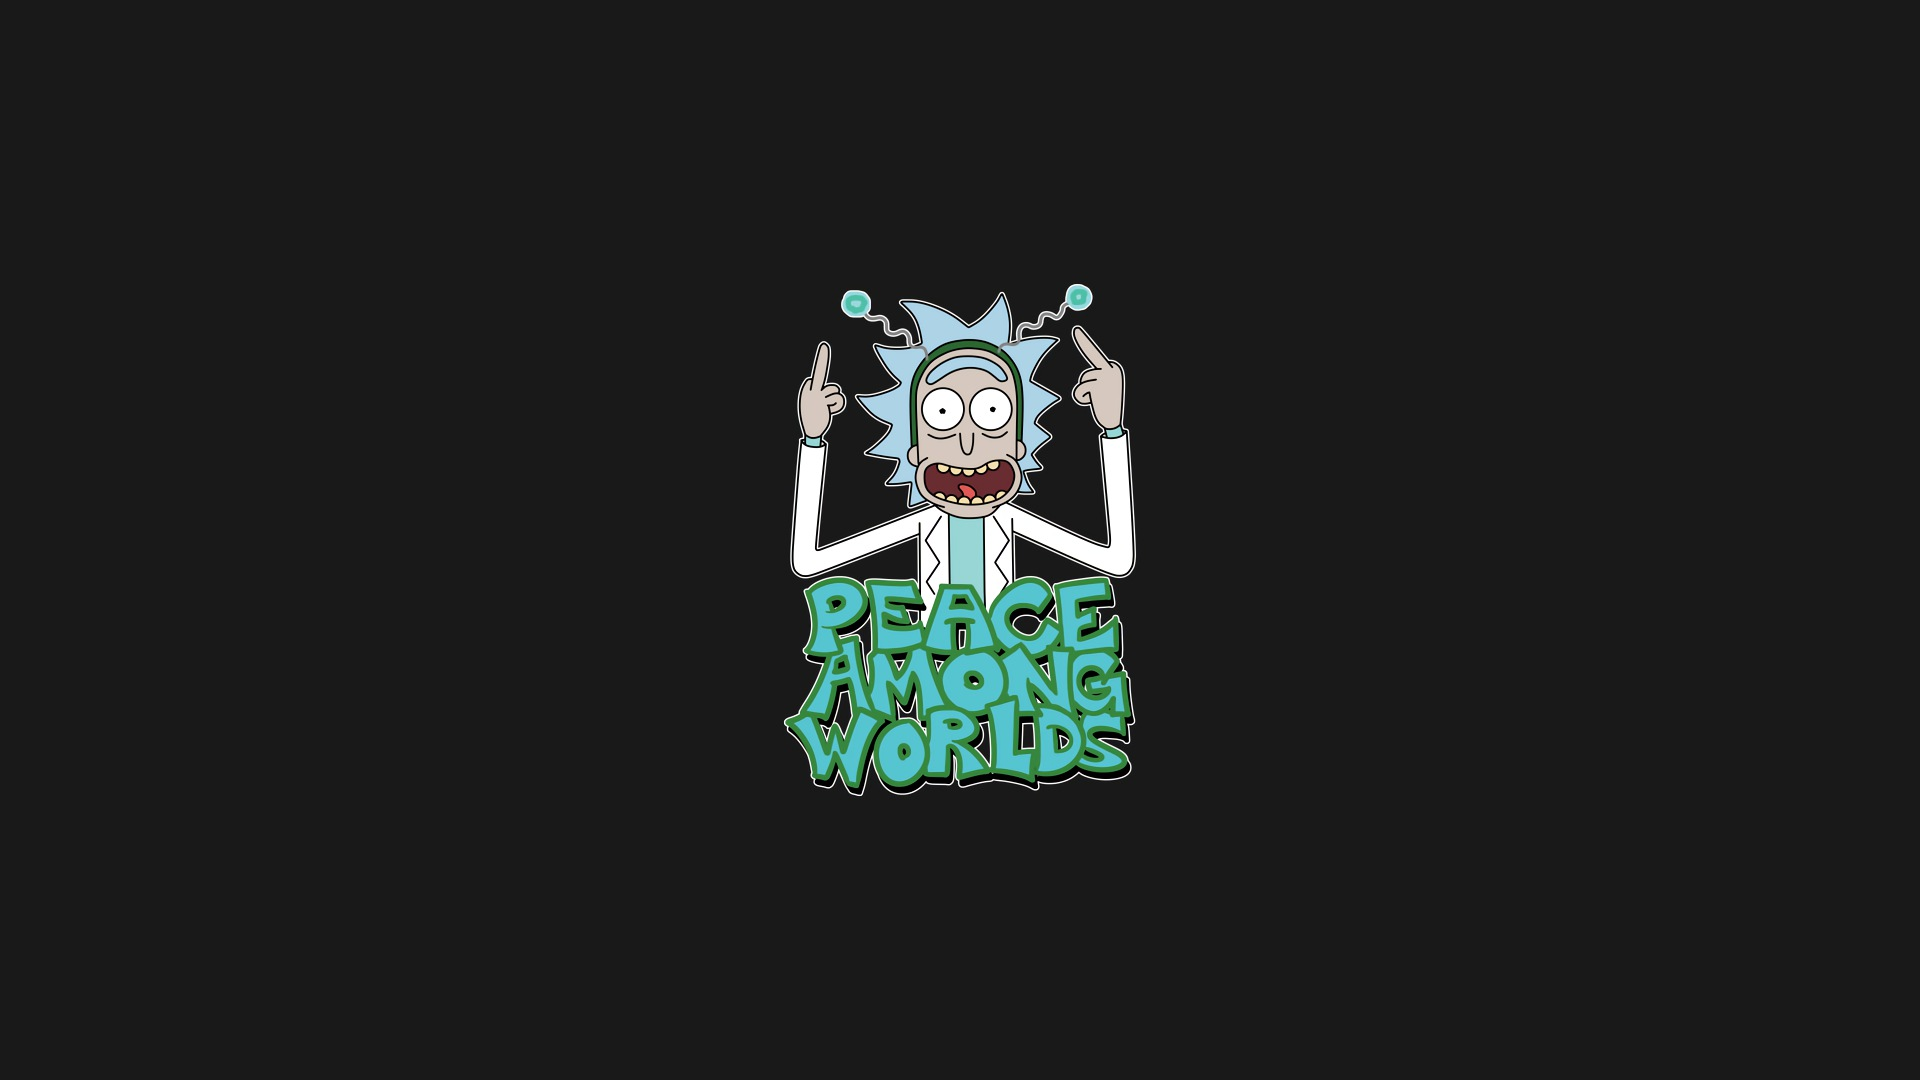 Peace Among Worlds Rick And Morty Wallpaper Hd Superheroes